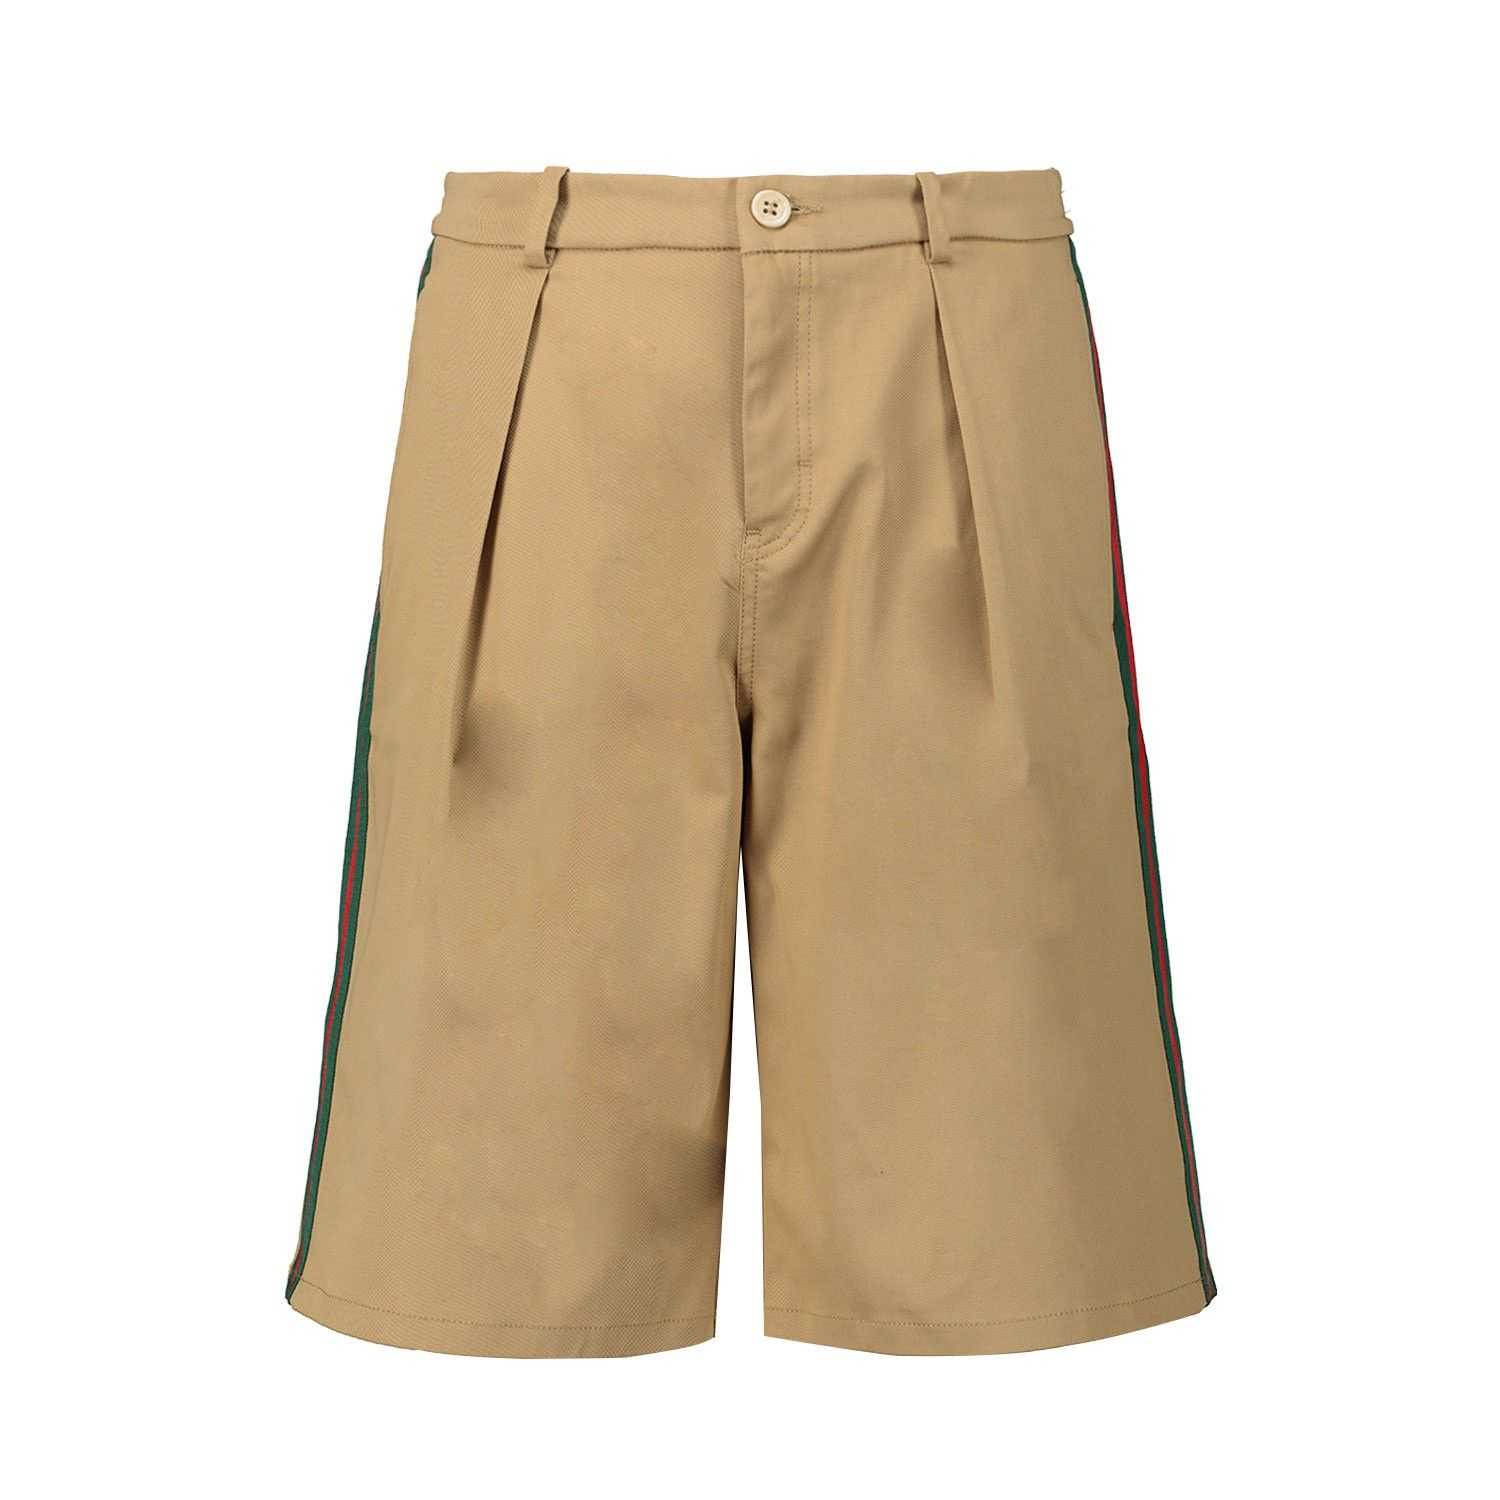 Picture of Gucci 600269 kids shorts beige